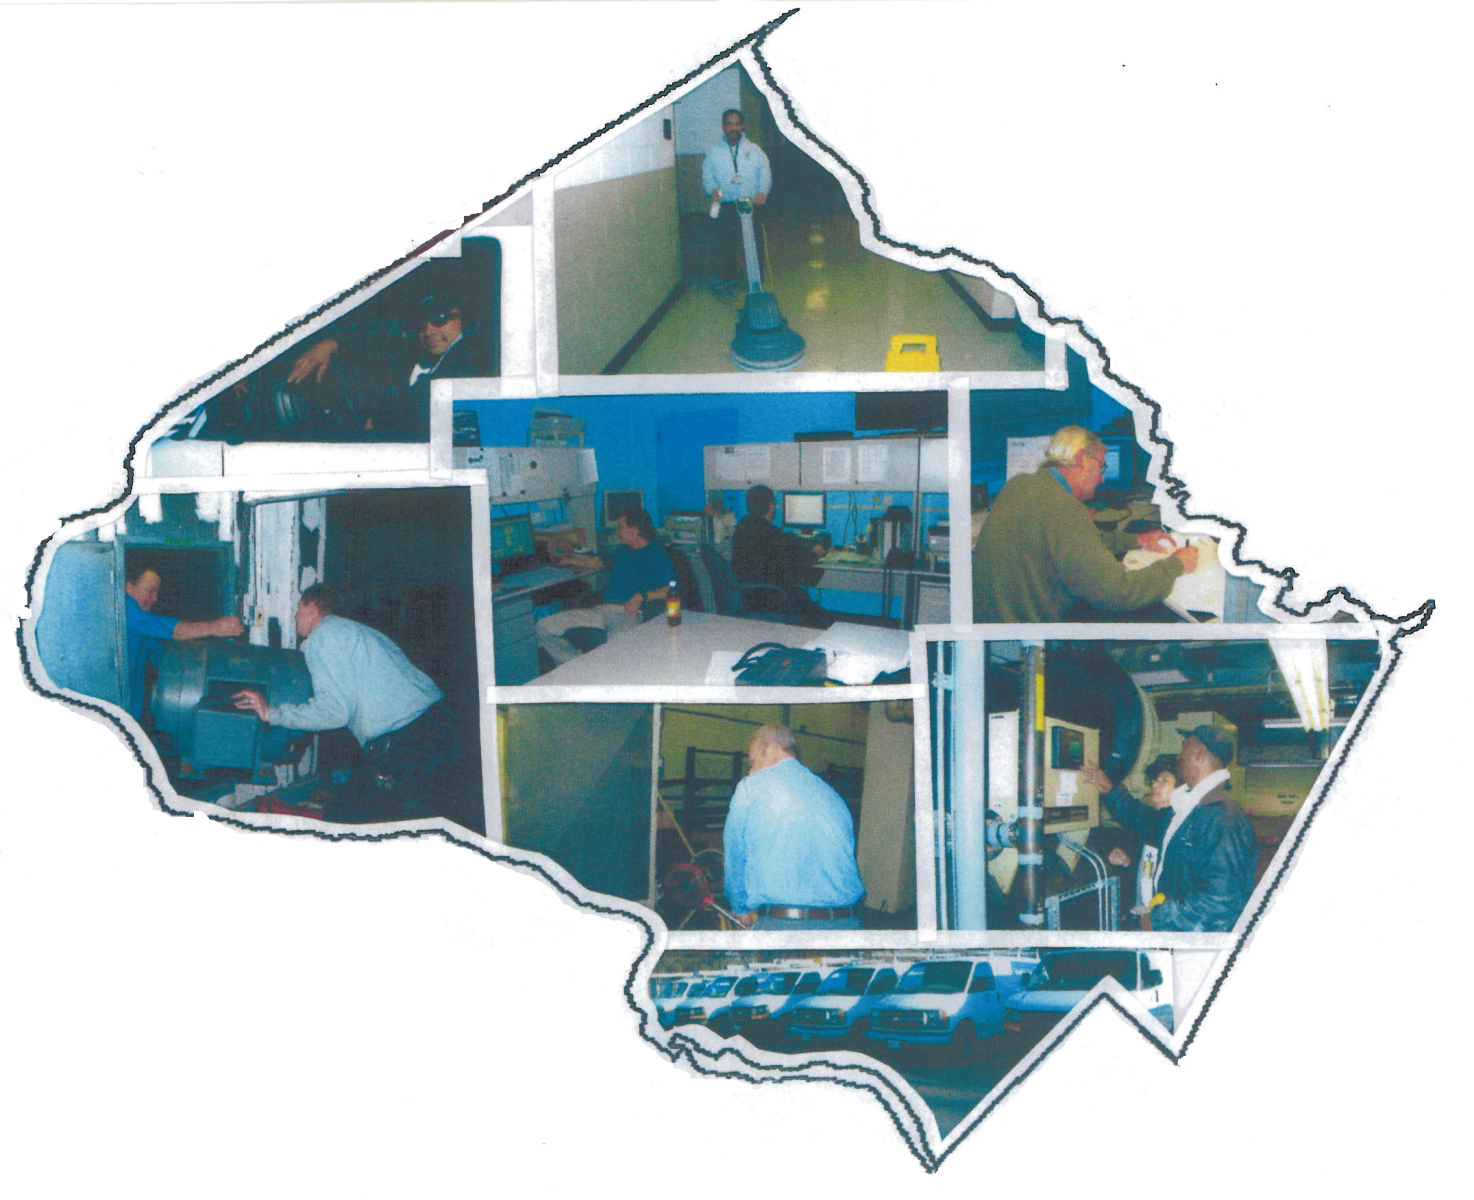 Pictures of various facilities management activities